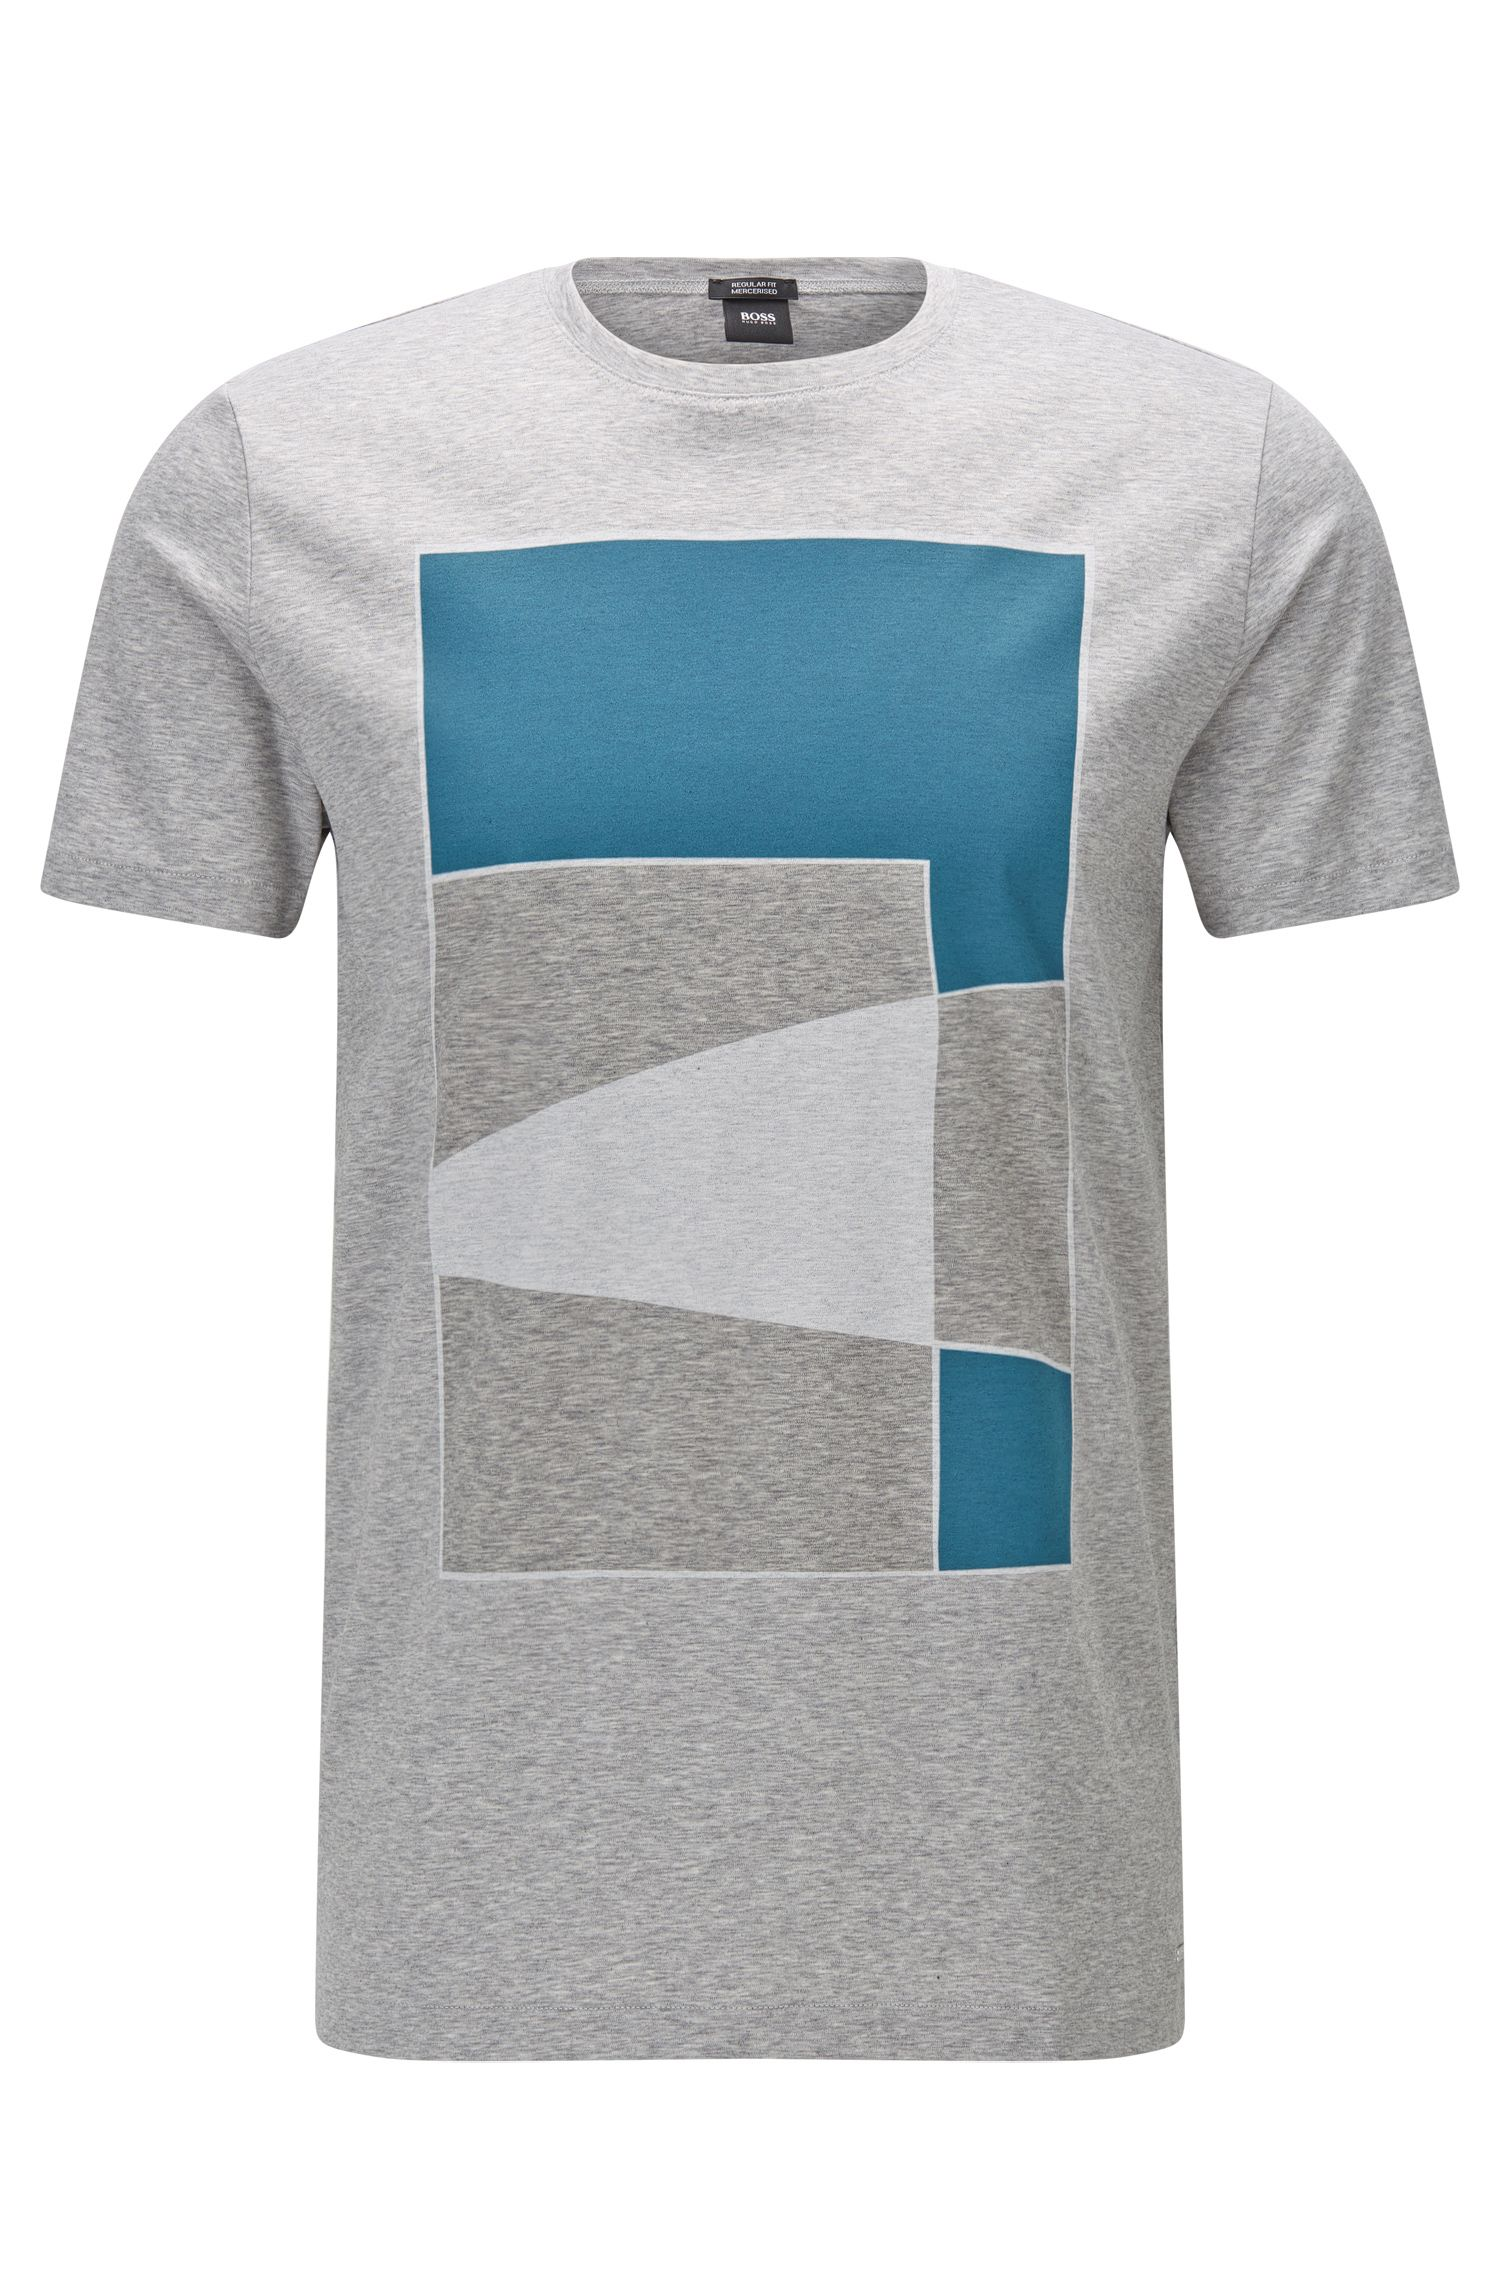 Cotton Graphic T-Shirt | Tilburt